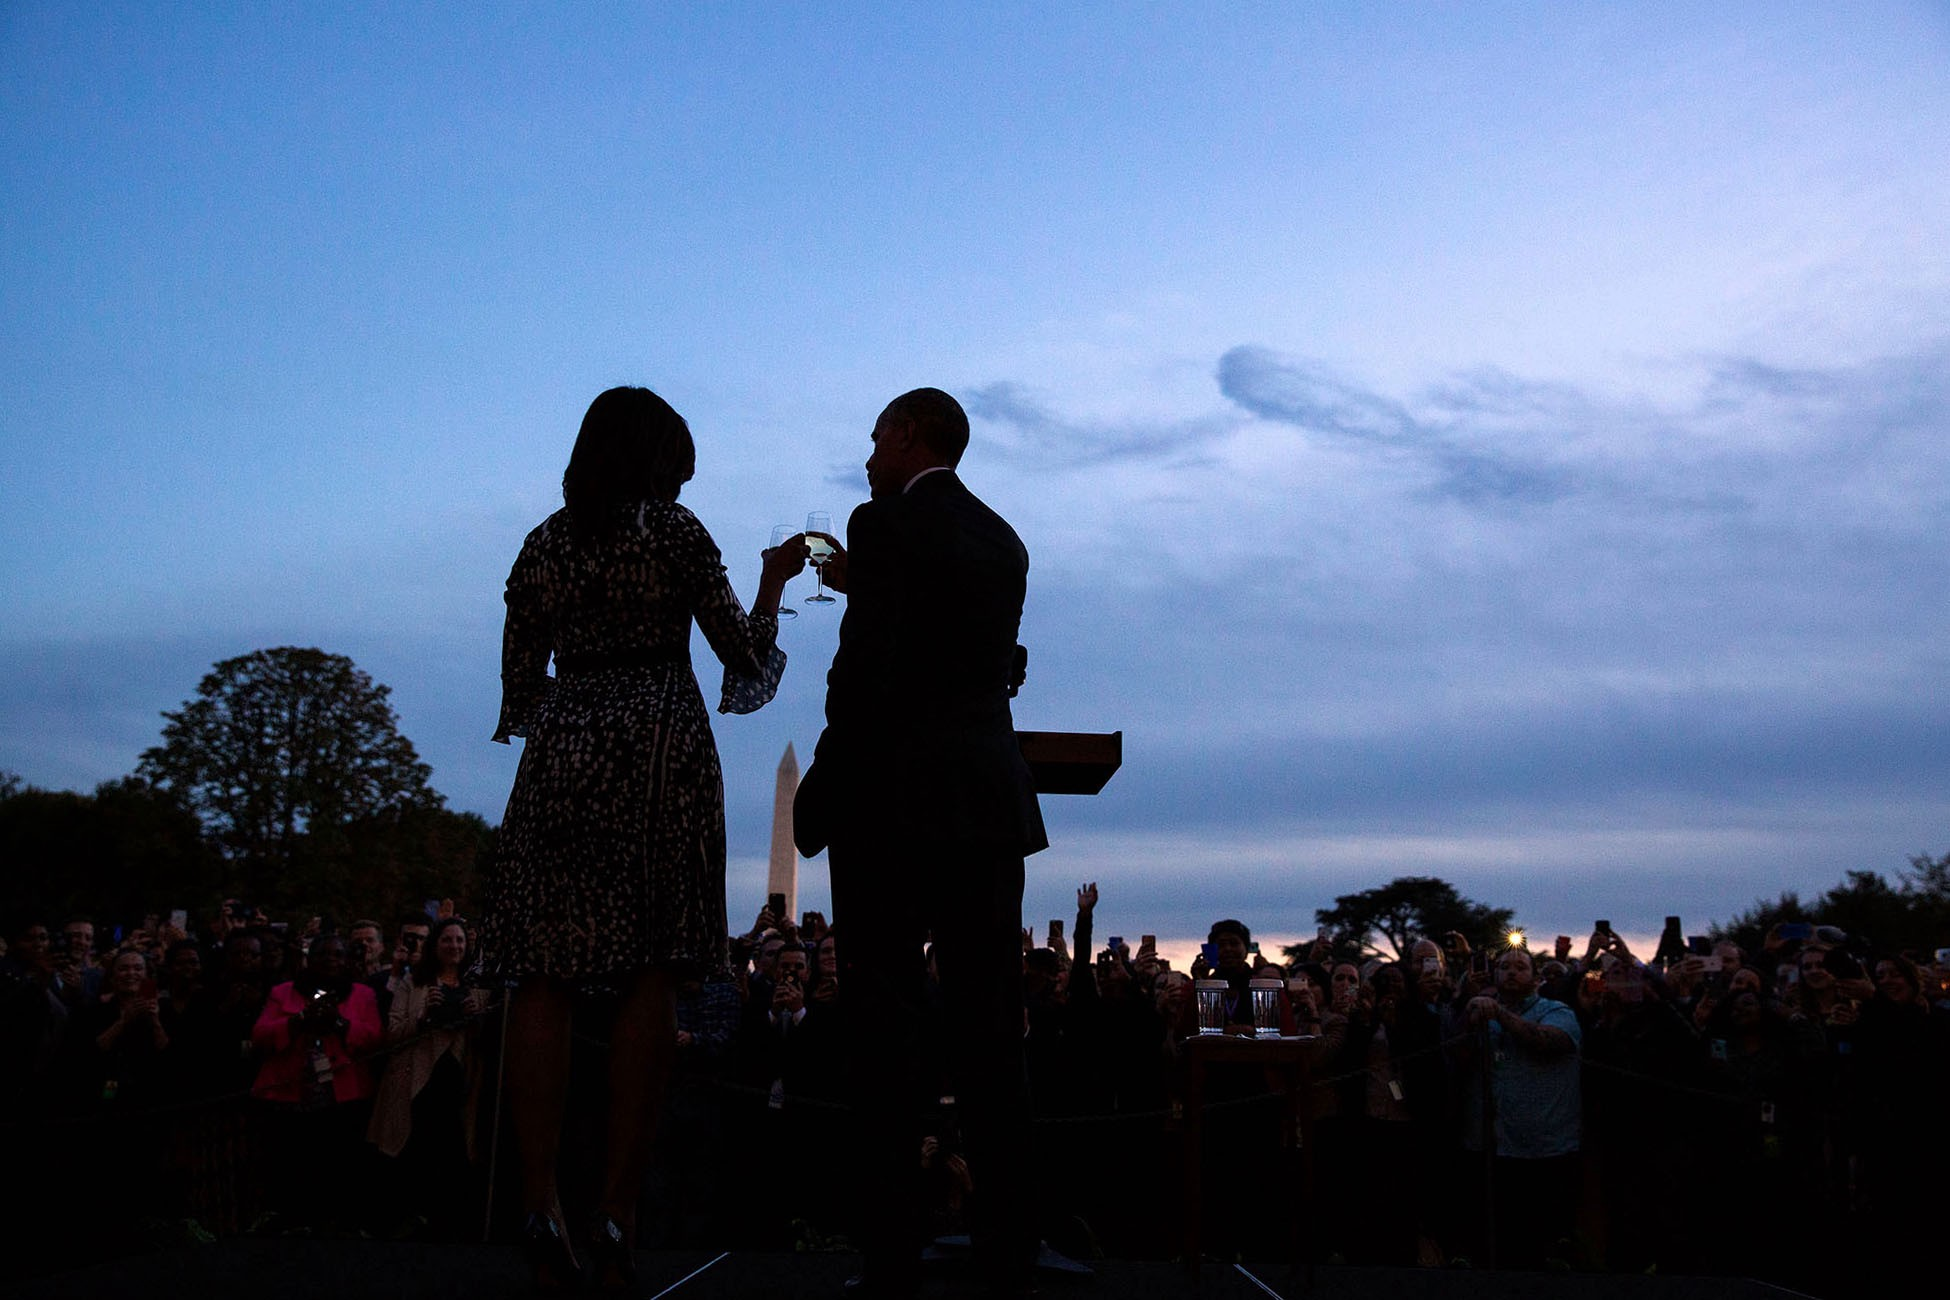 "Oct. 14, 2016 ""There was almost no light remaining at the end of the day when the President and First Lady walked out to the South Lawn for a 'Fourth Quarter' toast to White House staff."" (Official White House Photo by Pete Souza)"